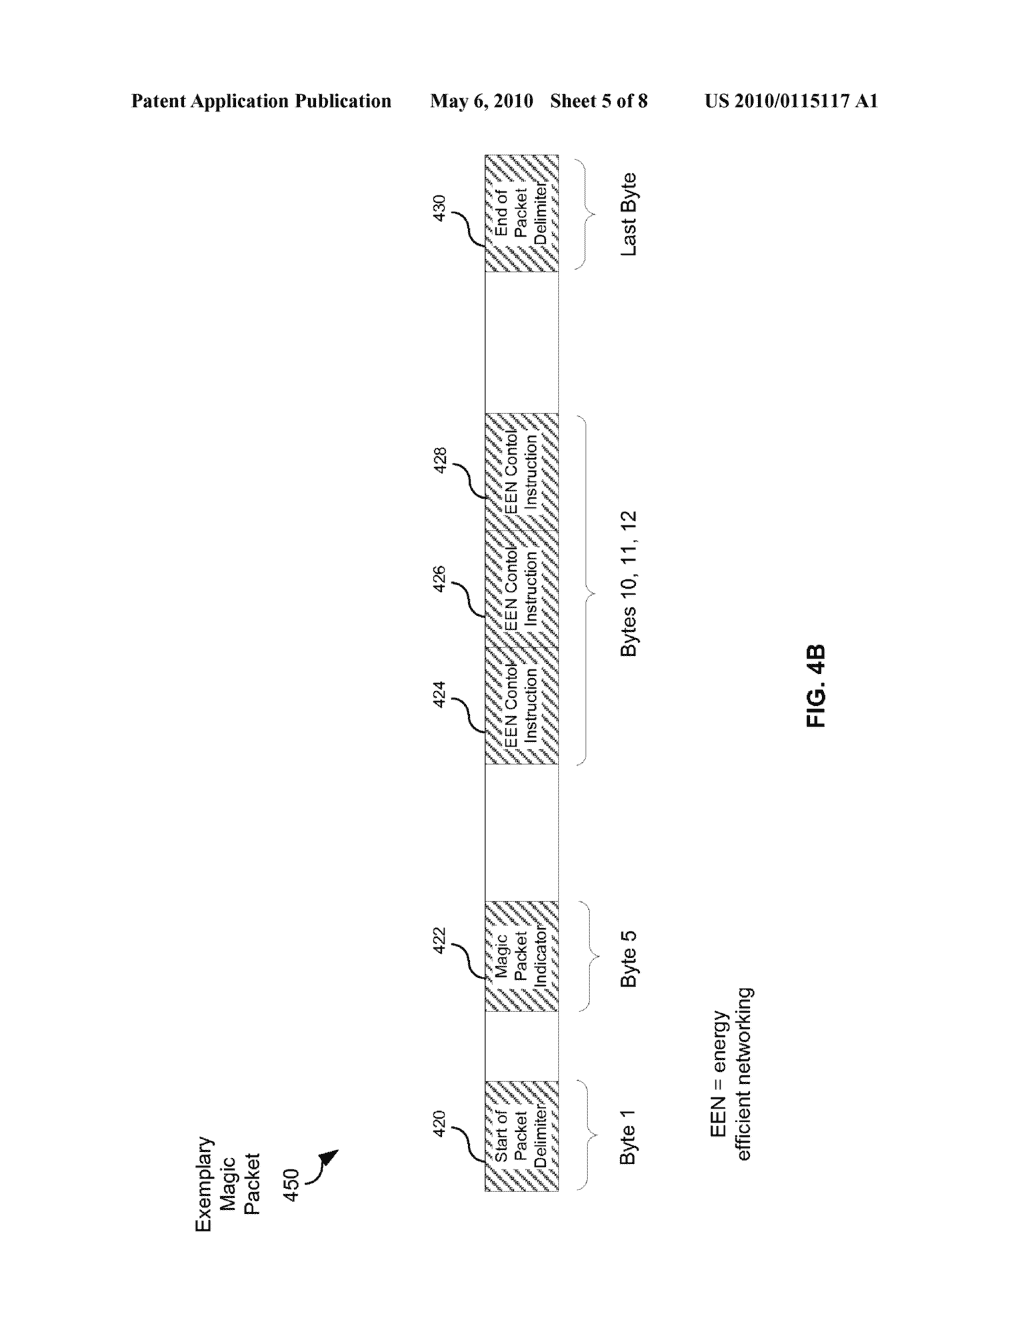 Method And System For Packet Based Signaling Between A MAC And A PHY To Manage Energy Efficient Network Devices And/Or Protocols - diagram, schematic, and image 06